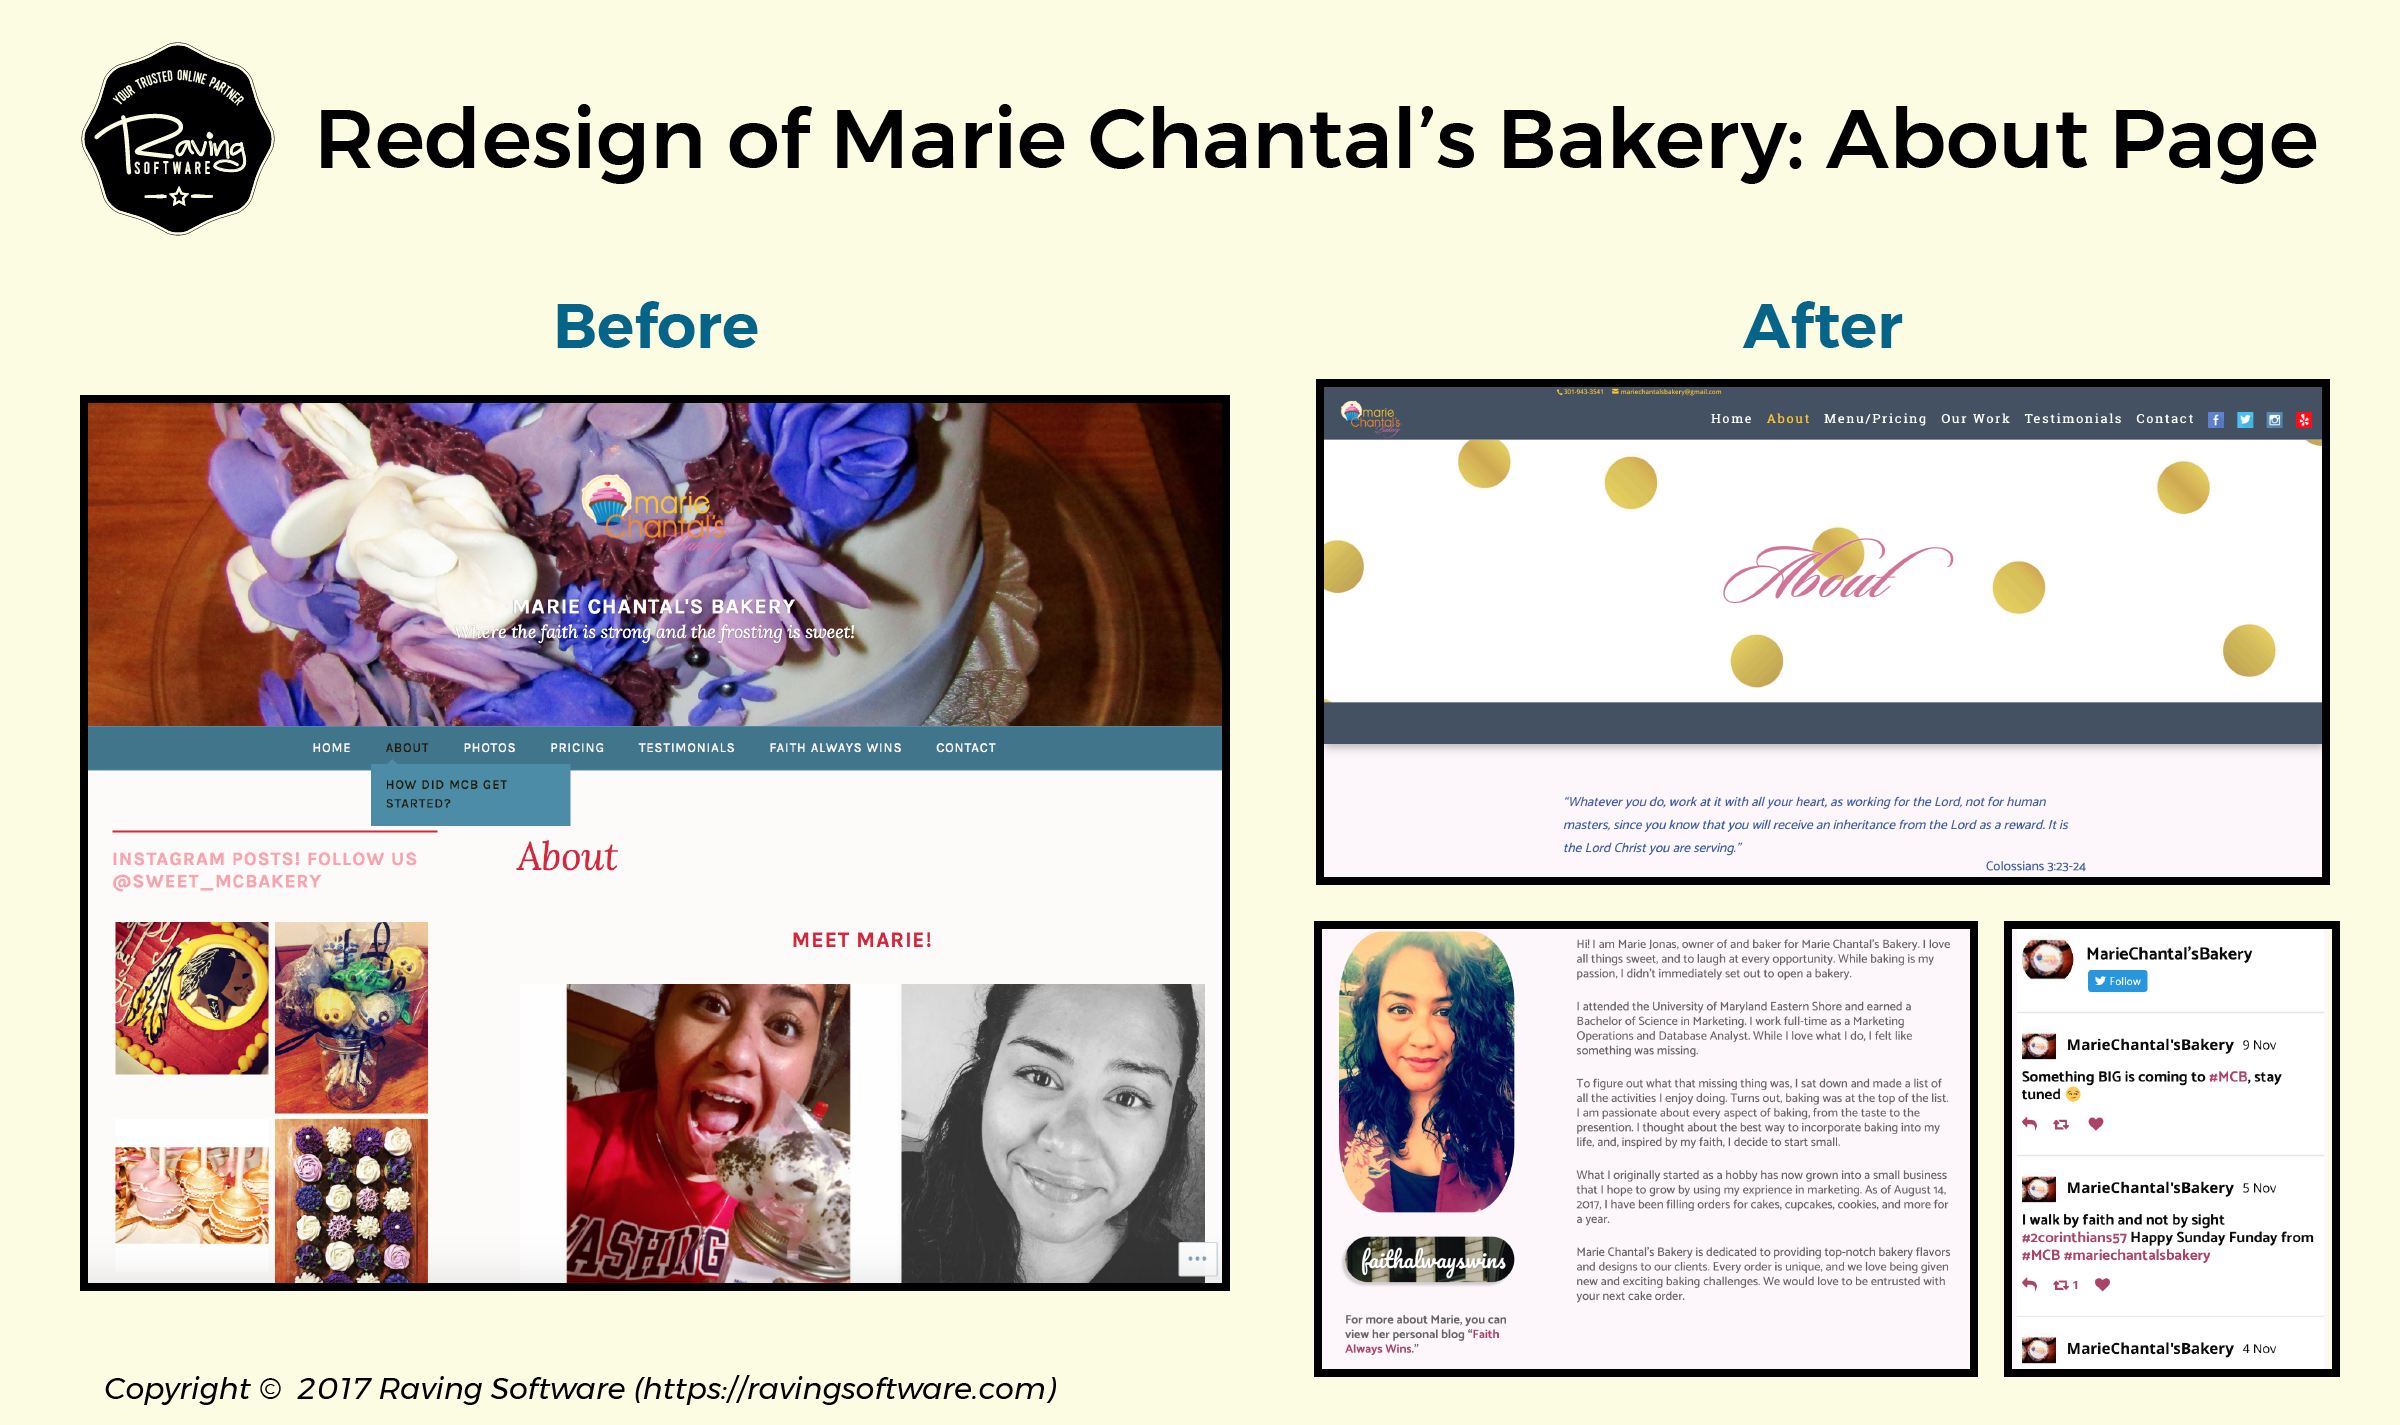 Before and After on Marie Chantal's Bakery website redesign for the about page.